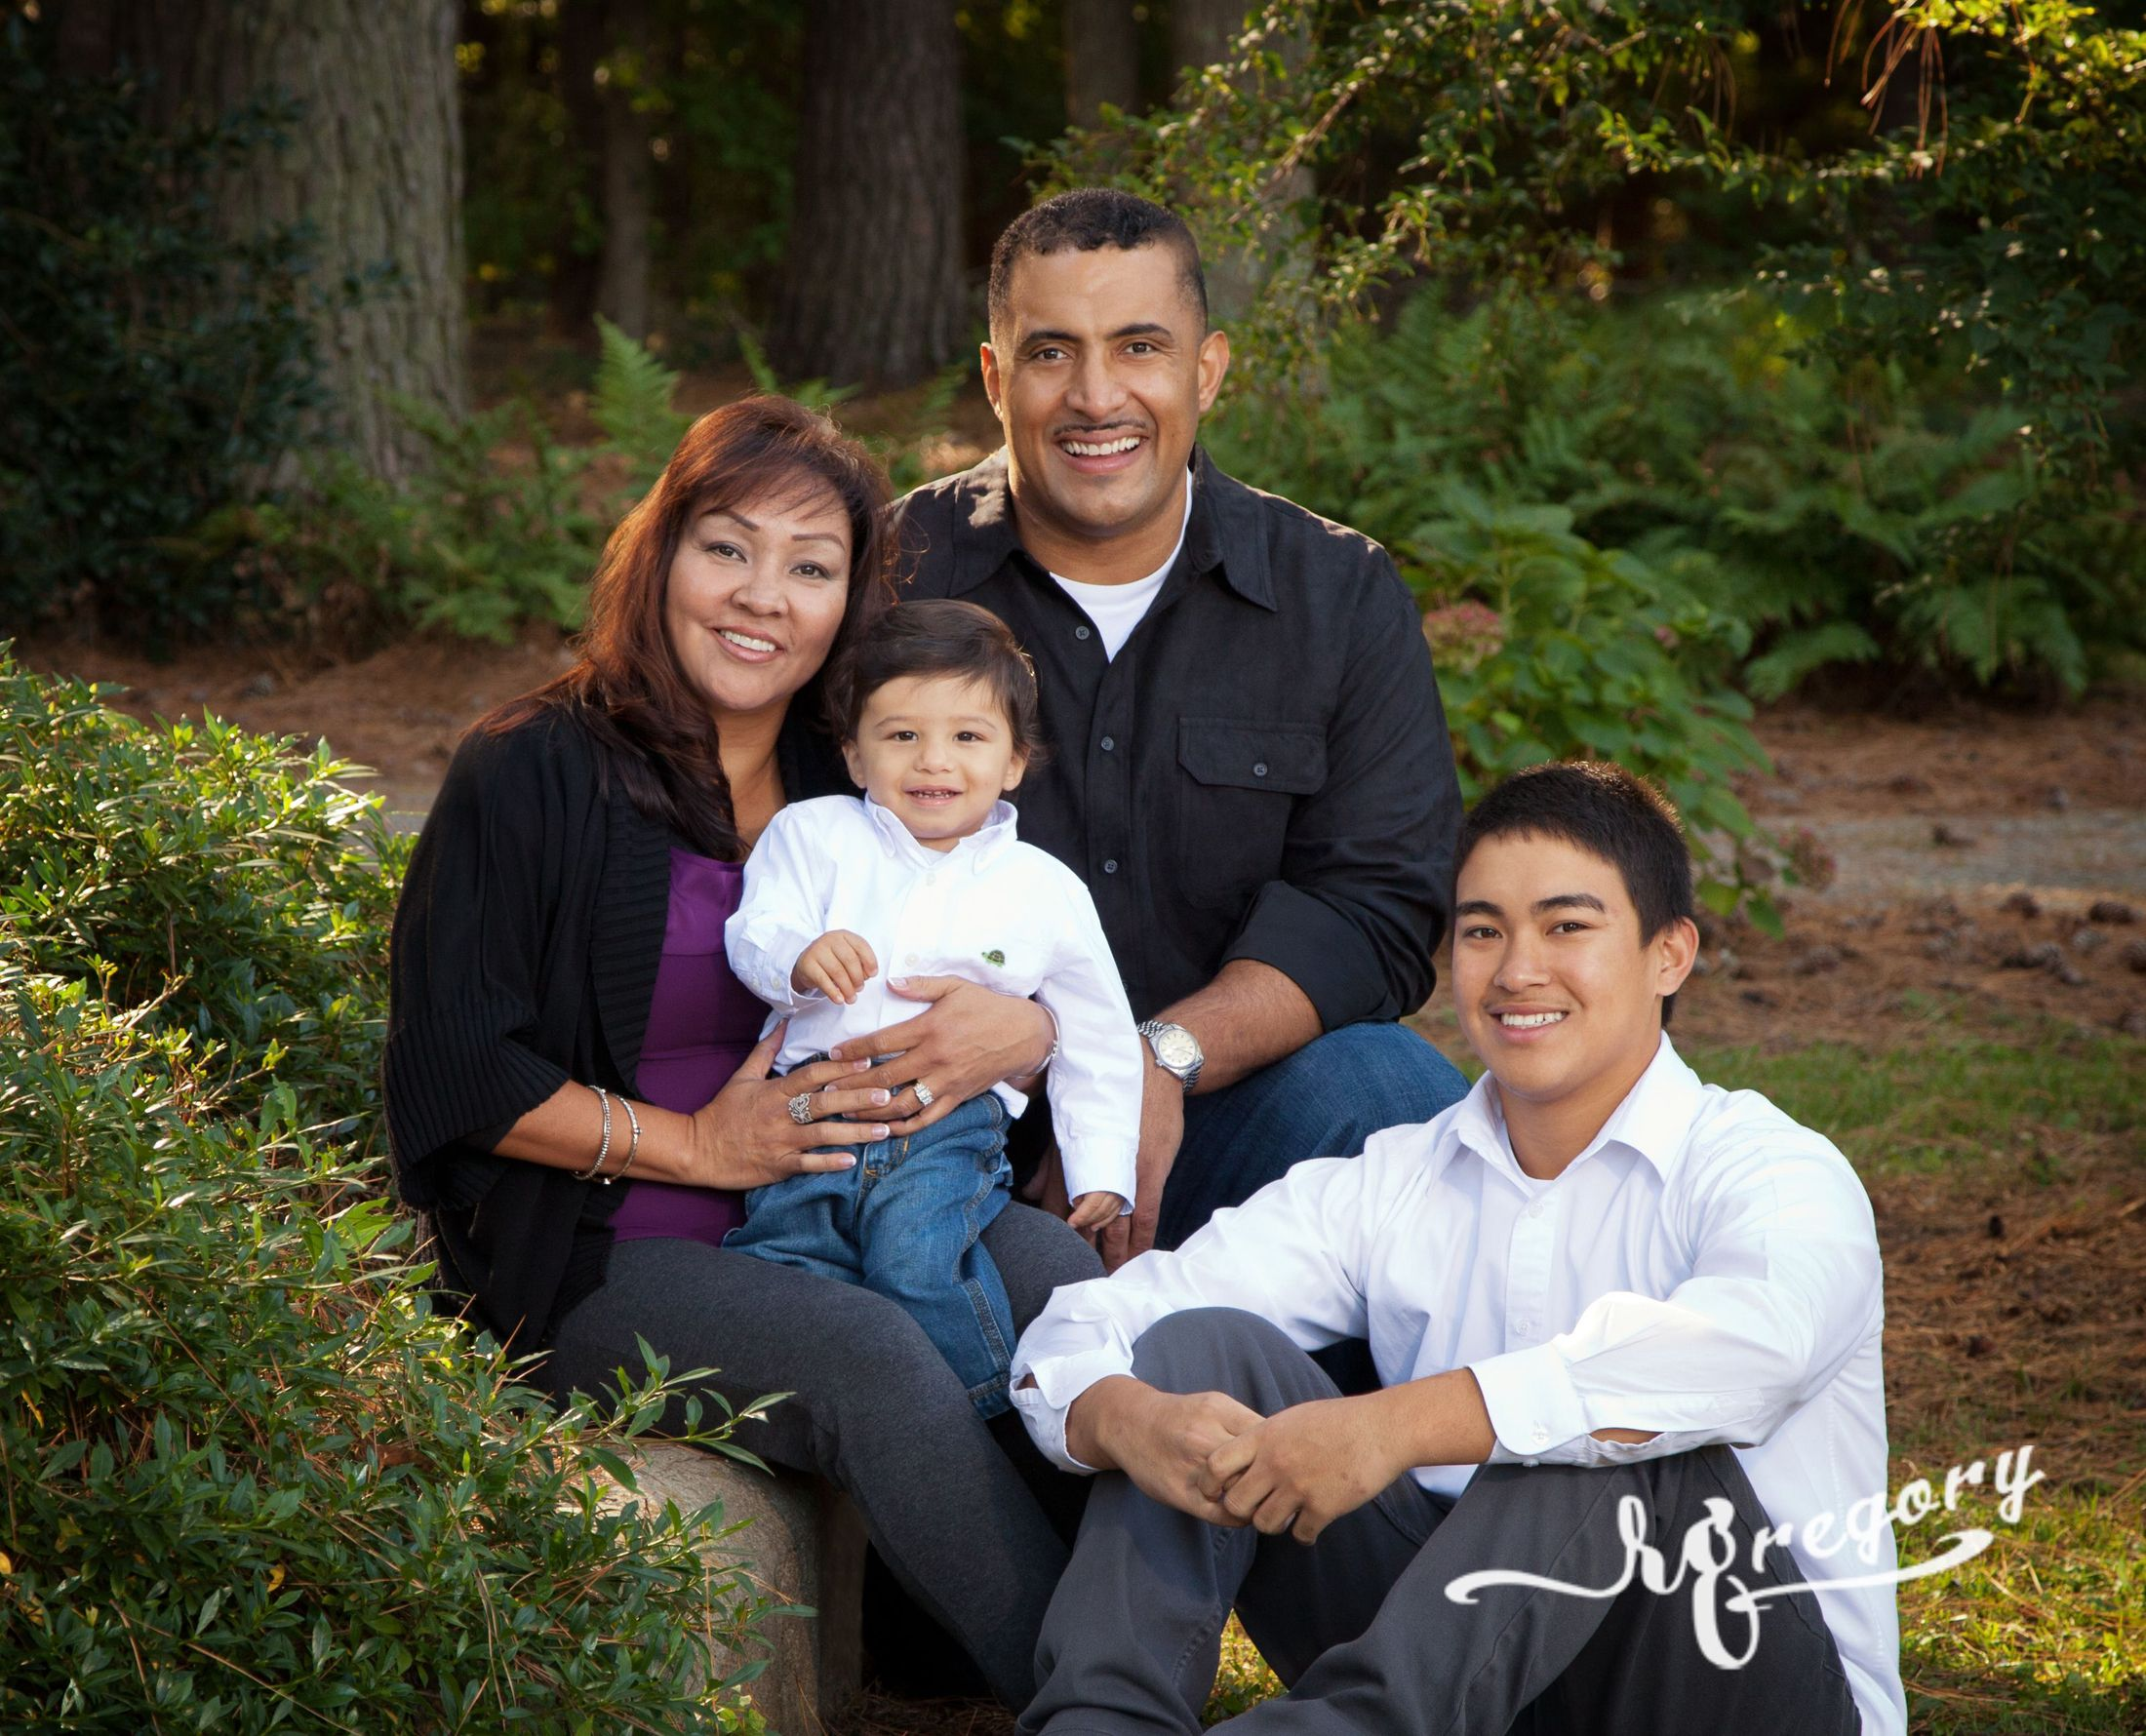 Lopez outdoor family photography